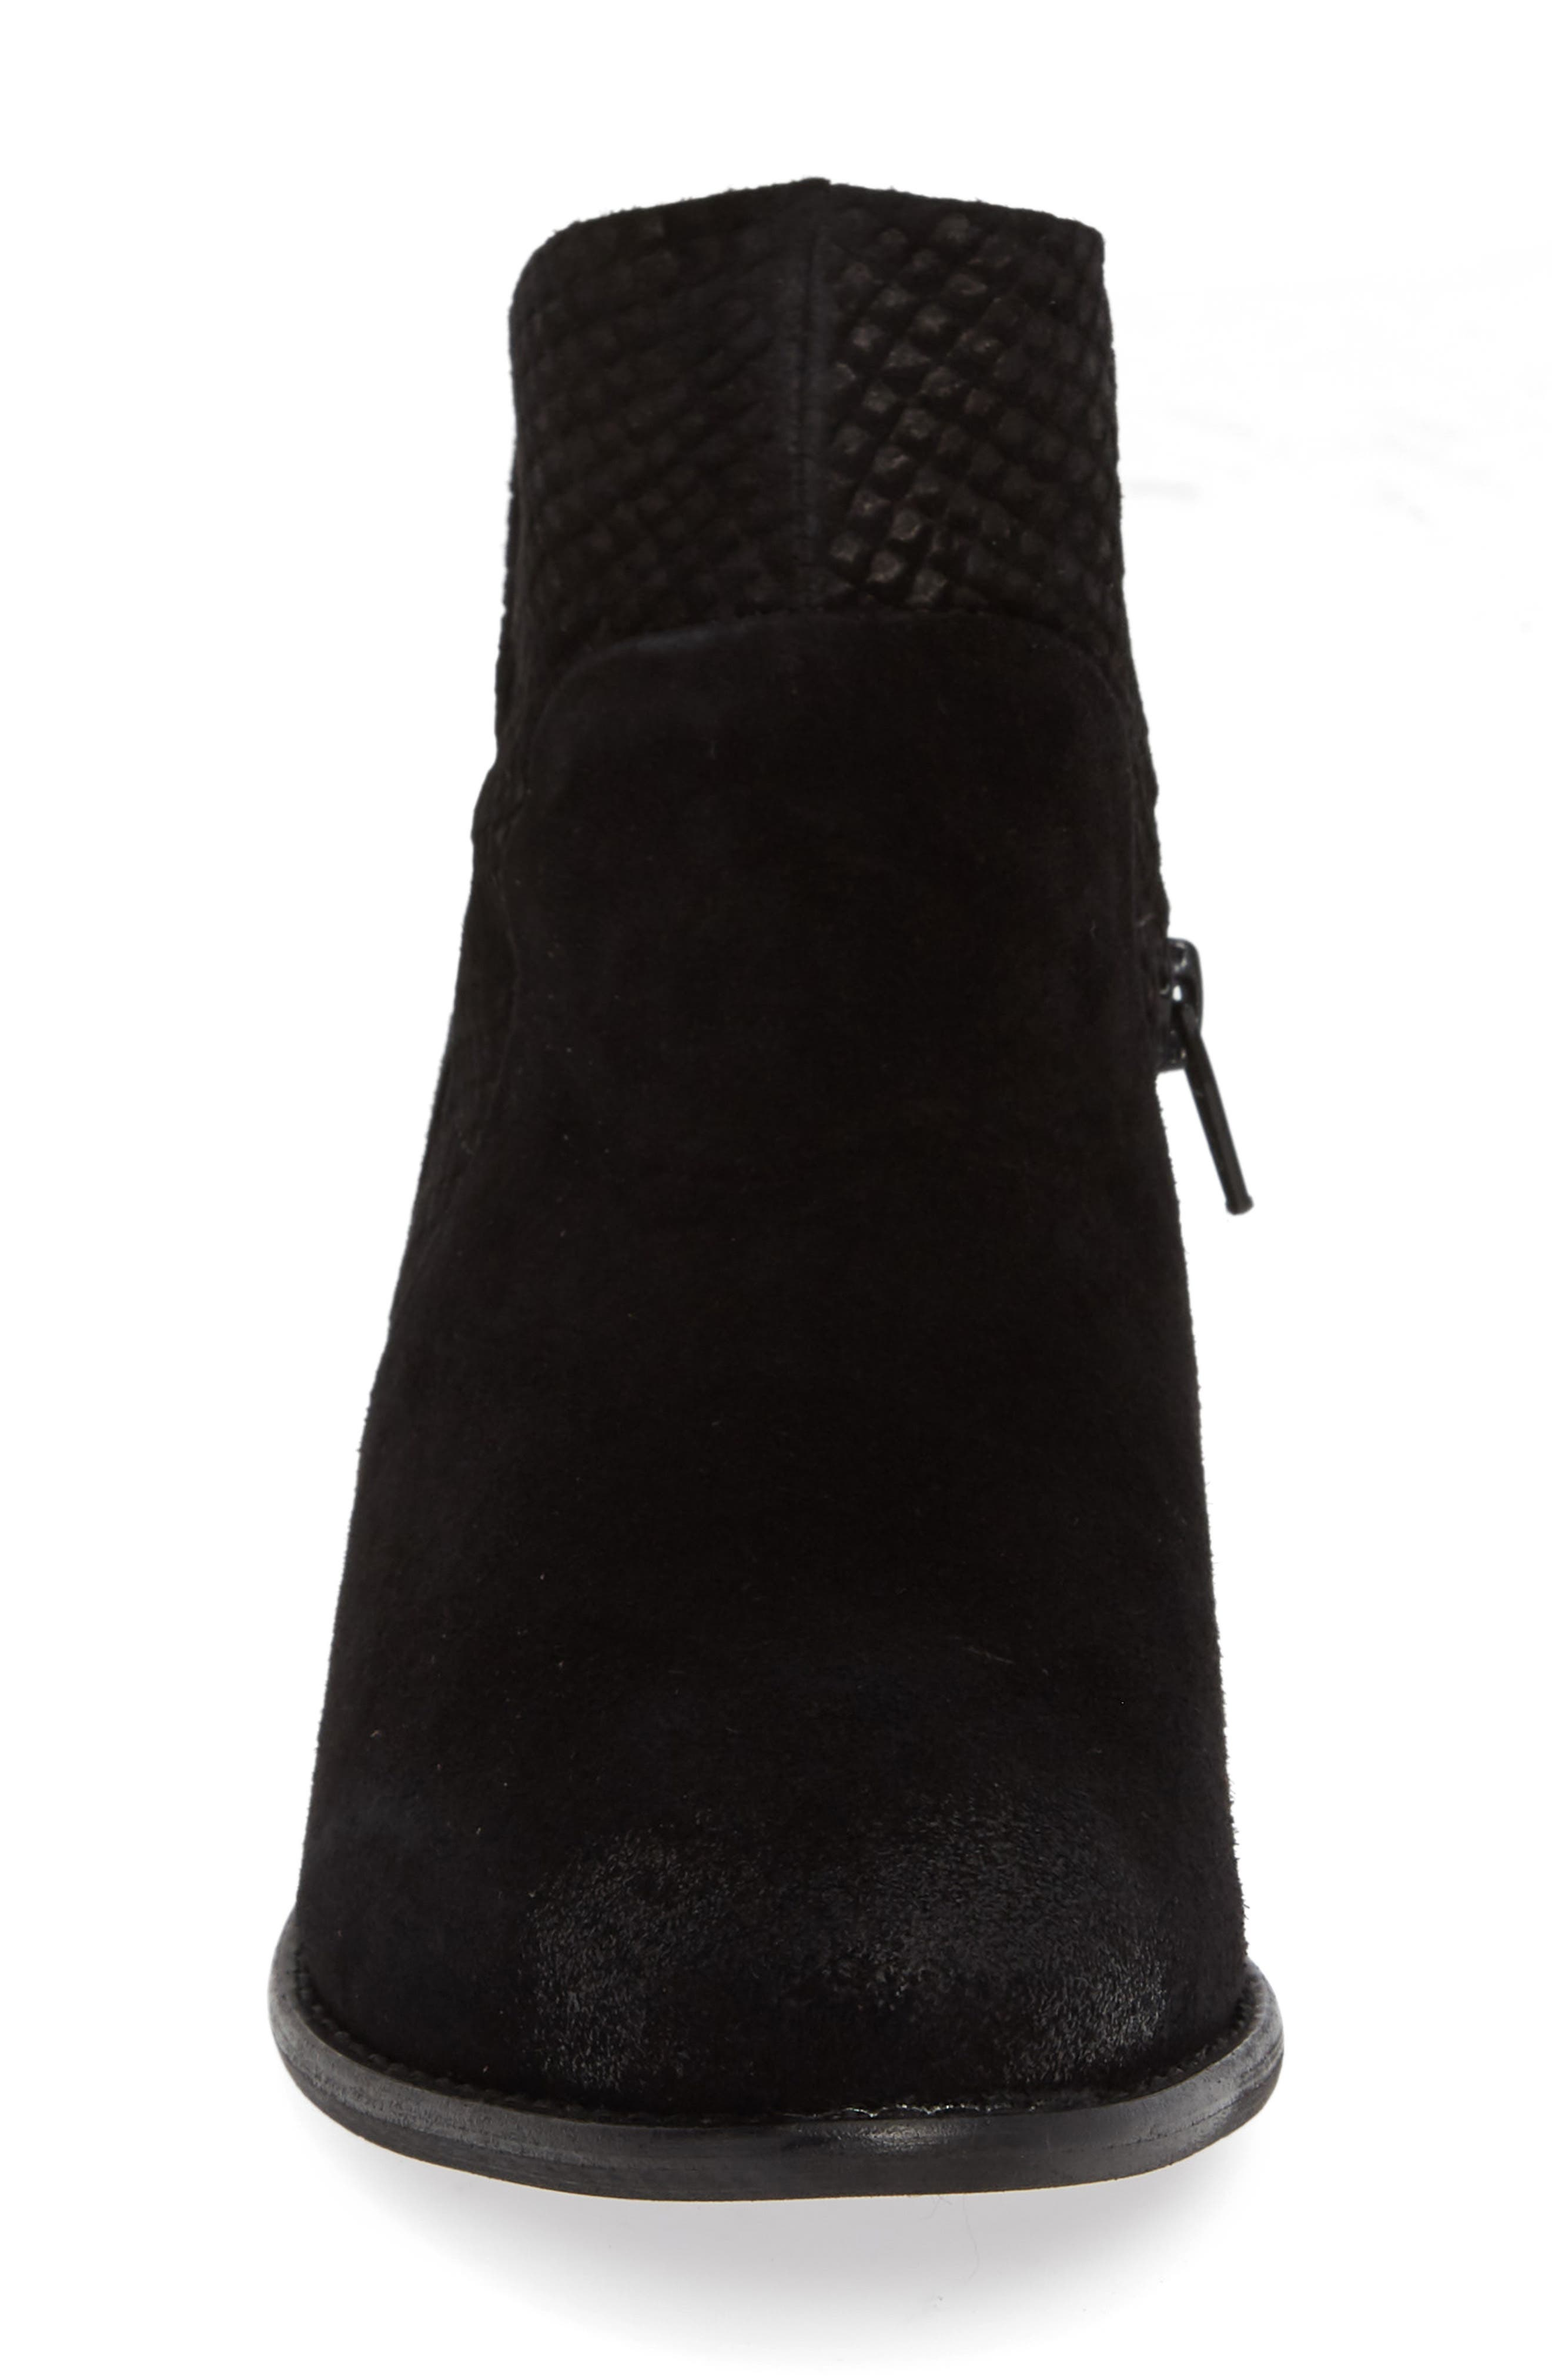 Score Bootie,                             Alternate thumbnail 4, color,                             BLACK SUEDE